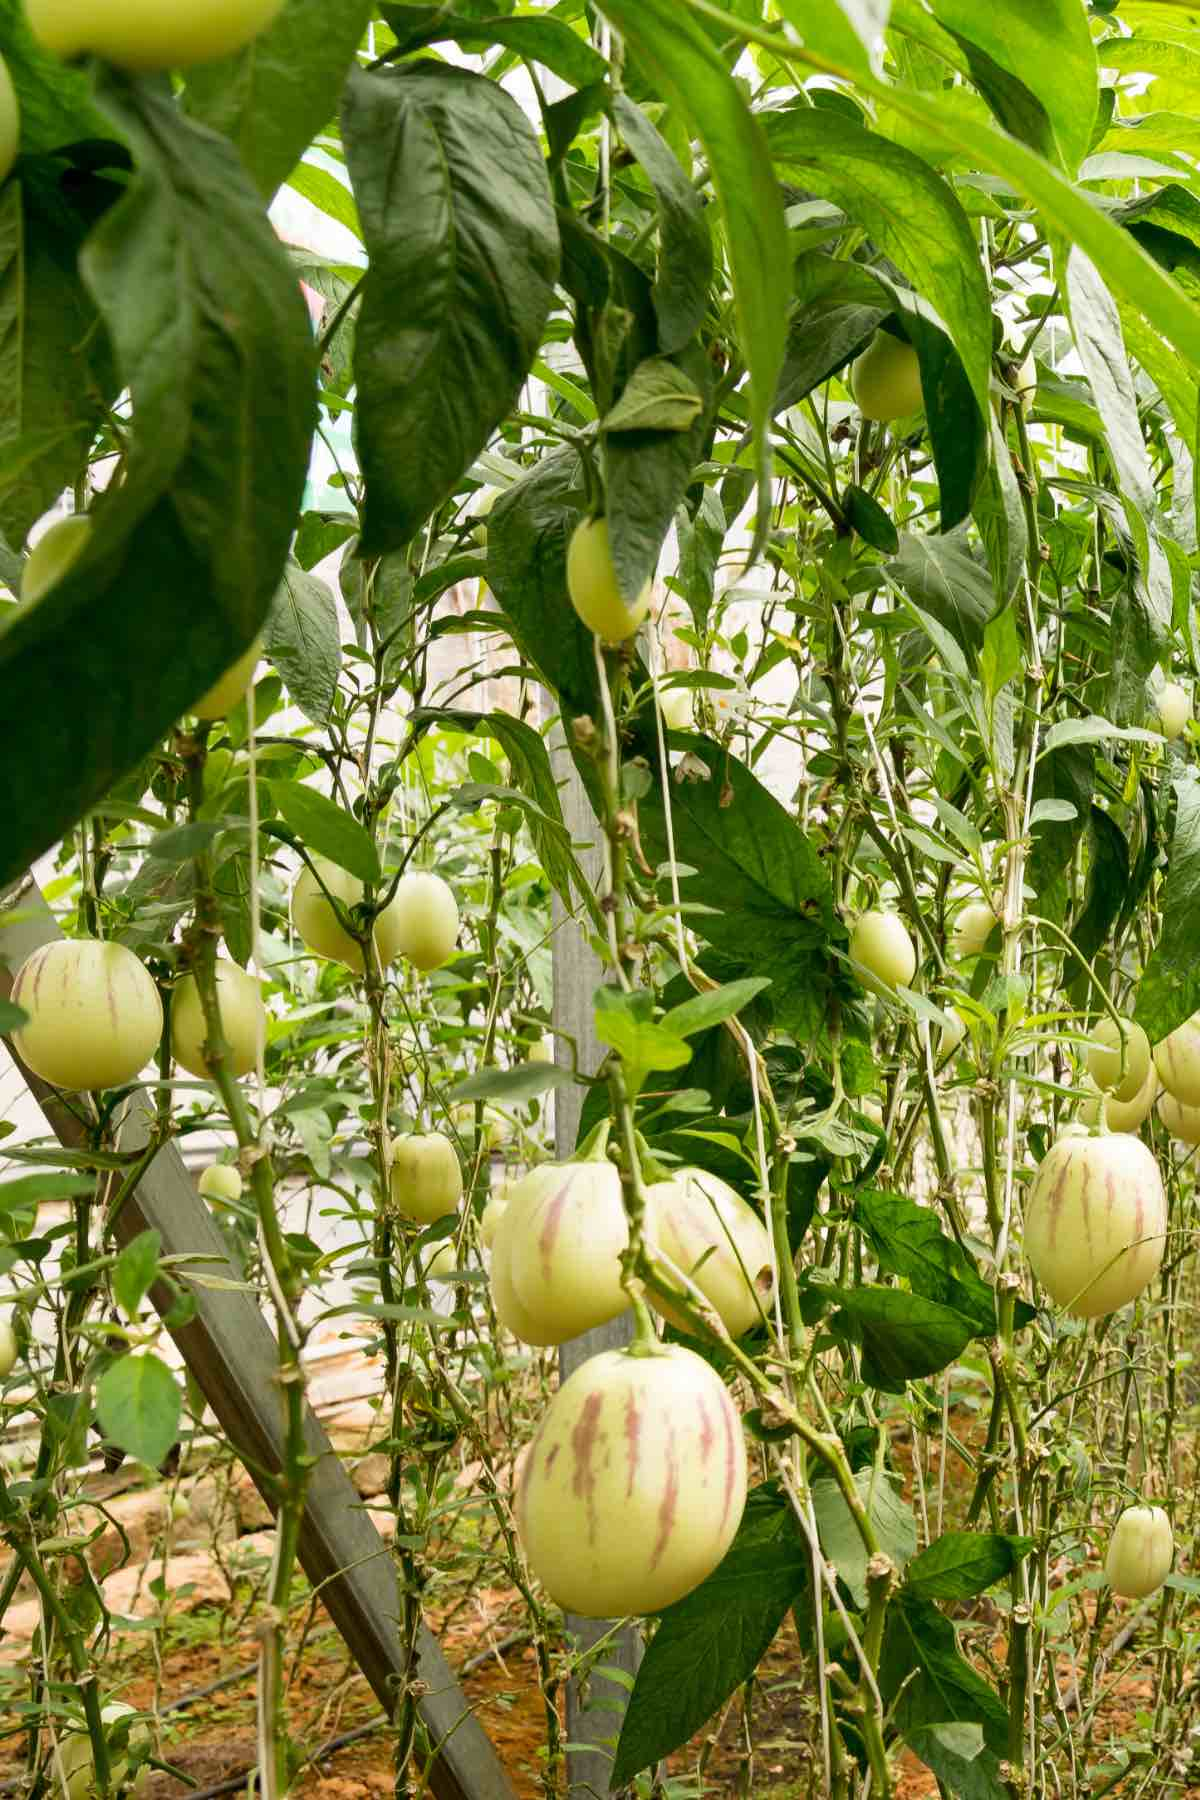 The pepino melon plant with fruits ready for harvesting